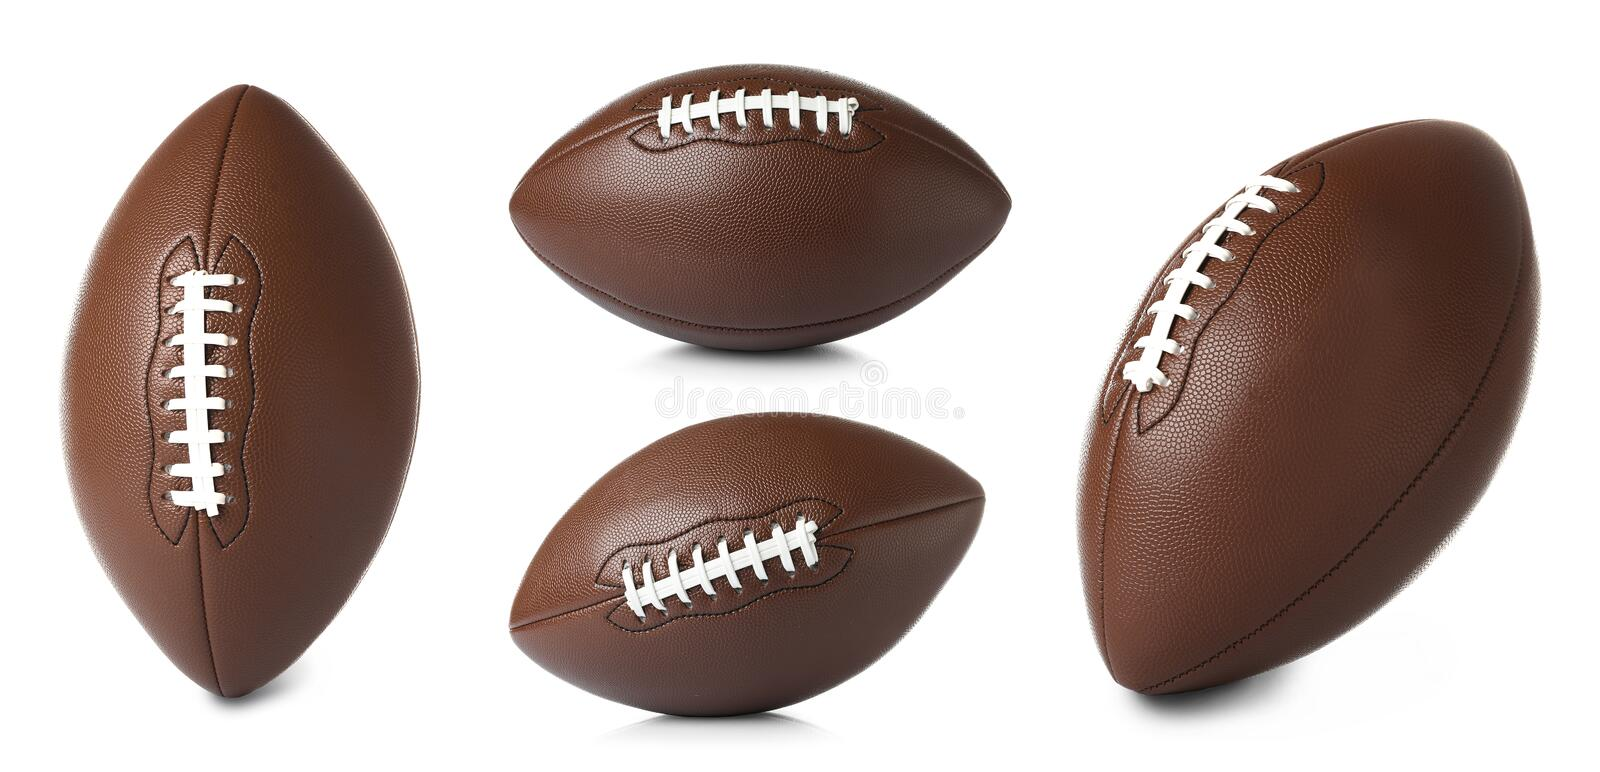 Set of leather American soccer balls on white background stock photo